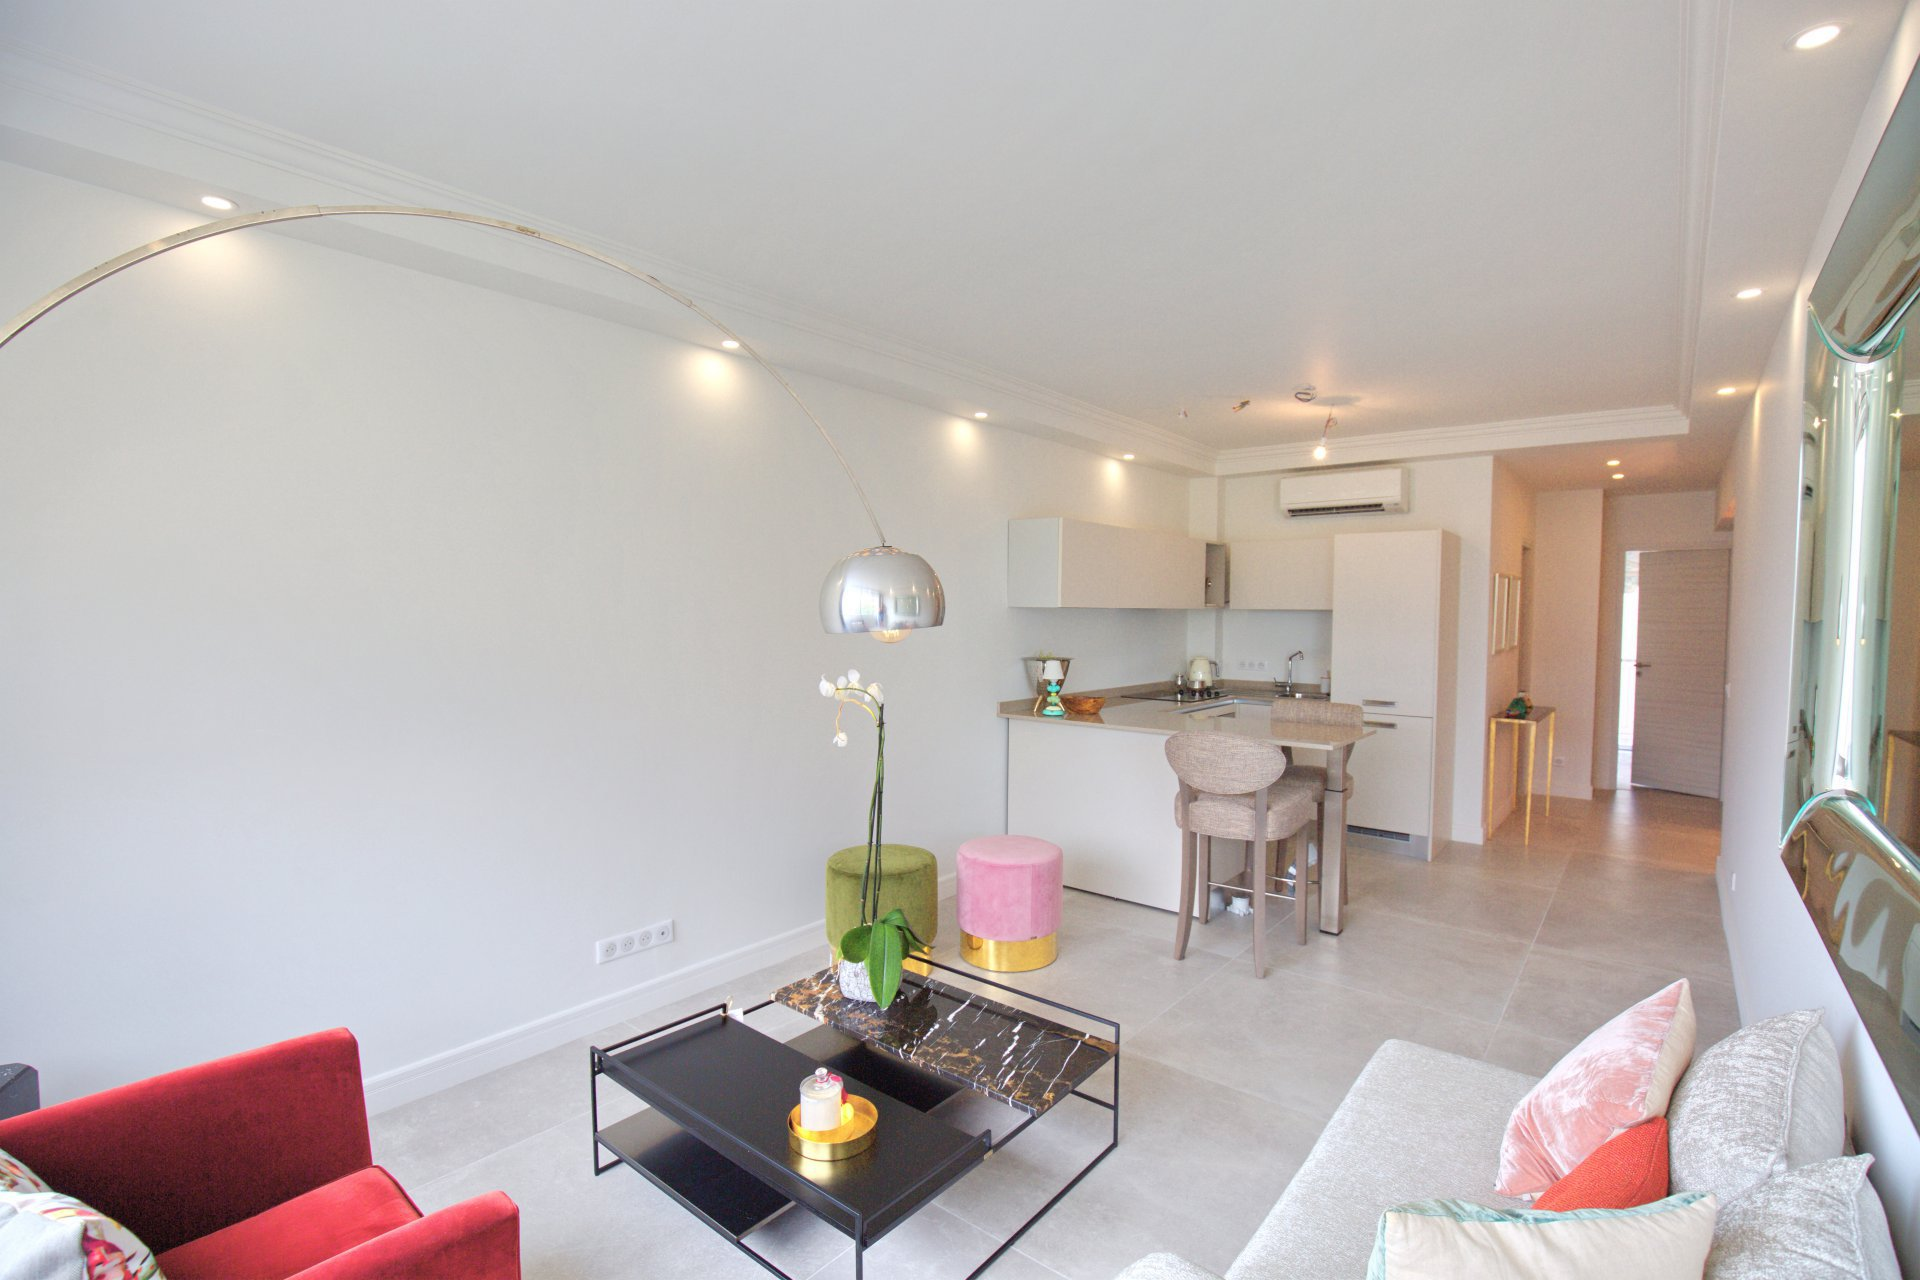 Located in the heart of Beaulieu-sur-Mer, paradisiac seaside resort located between Monaco and Nice, this beautiful apartment completely renovated...